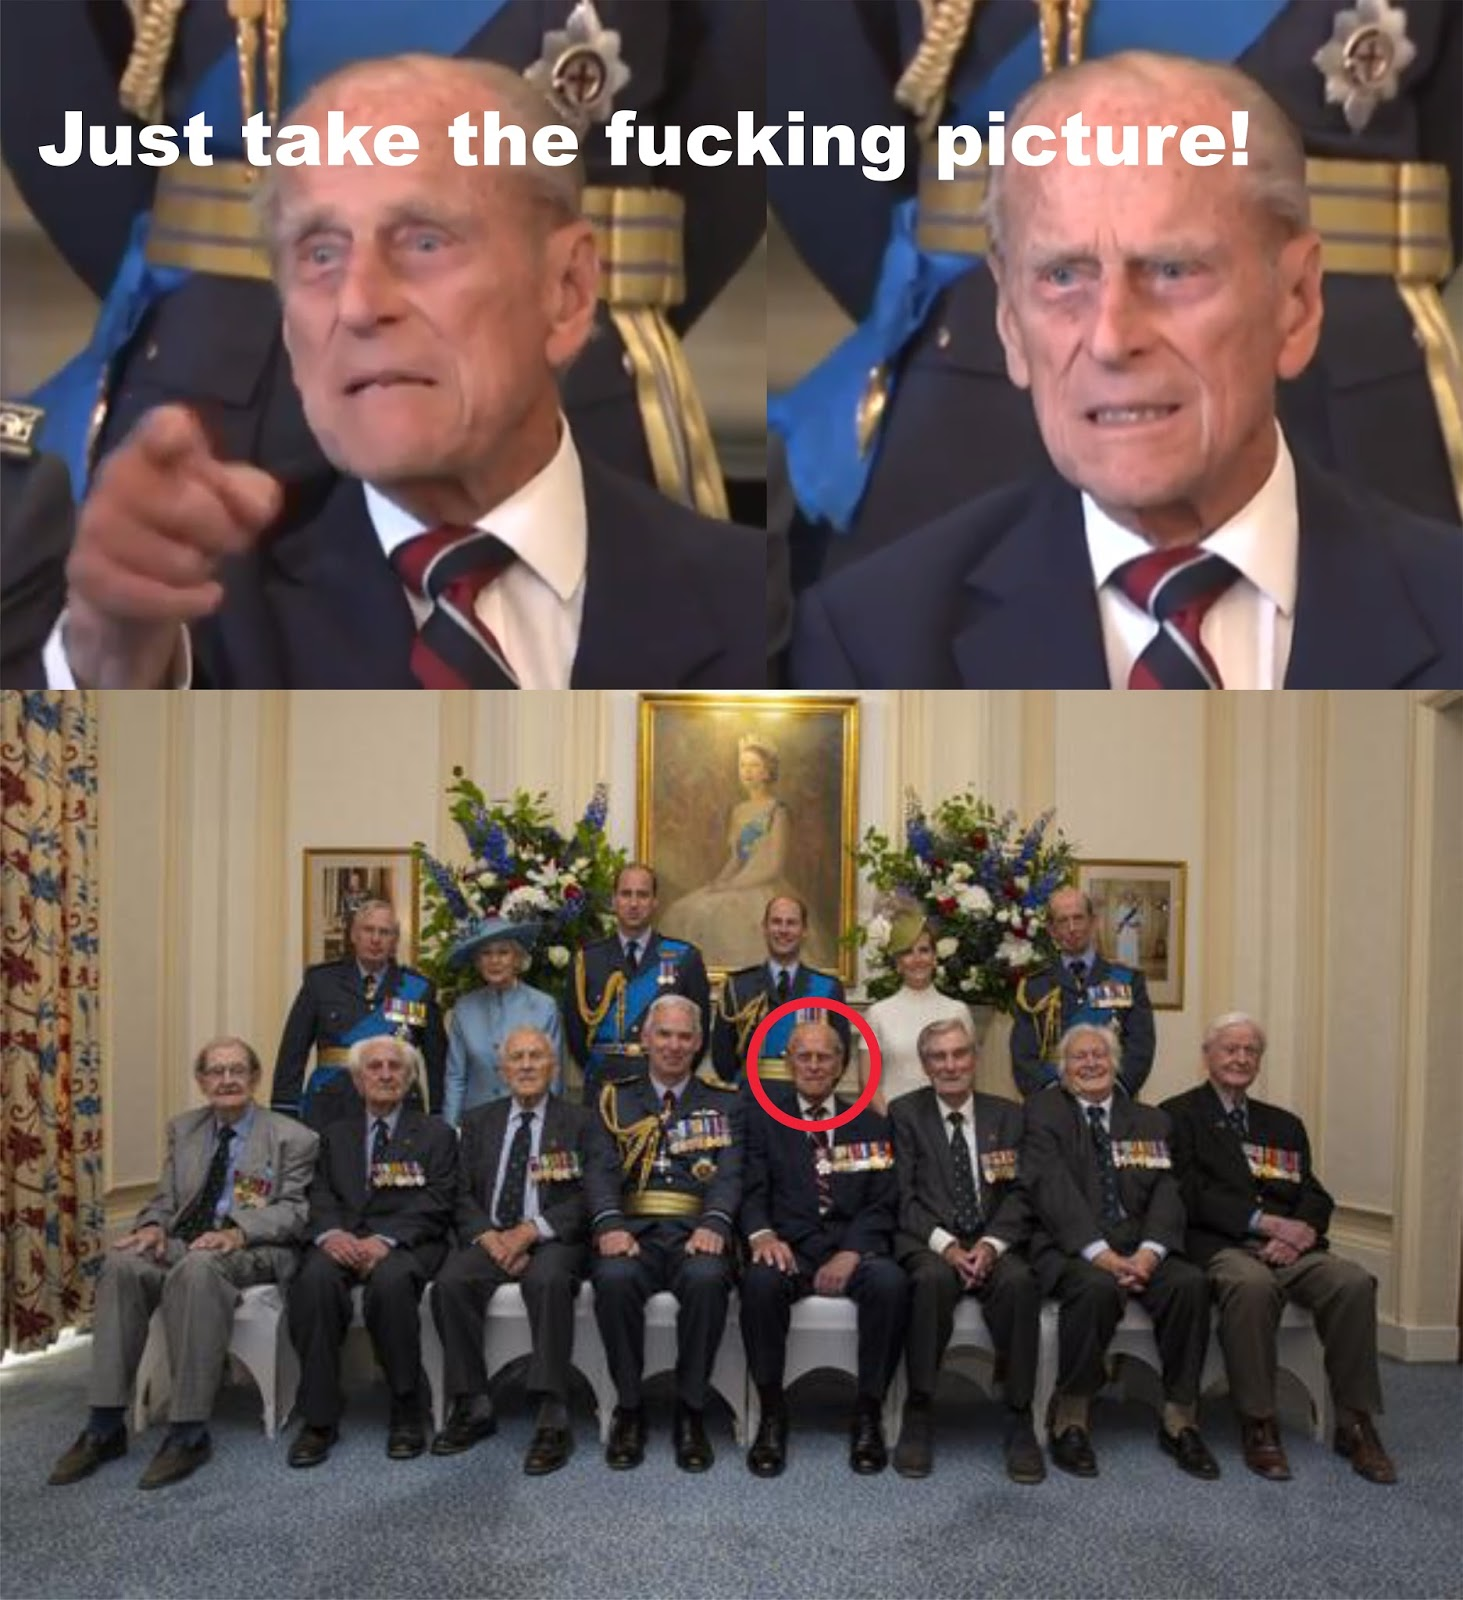 http://www.theguardian.com/uk-news/2015/jul/10/prince-philip-tells-photographer-just-take-the-fucking-picture